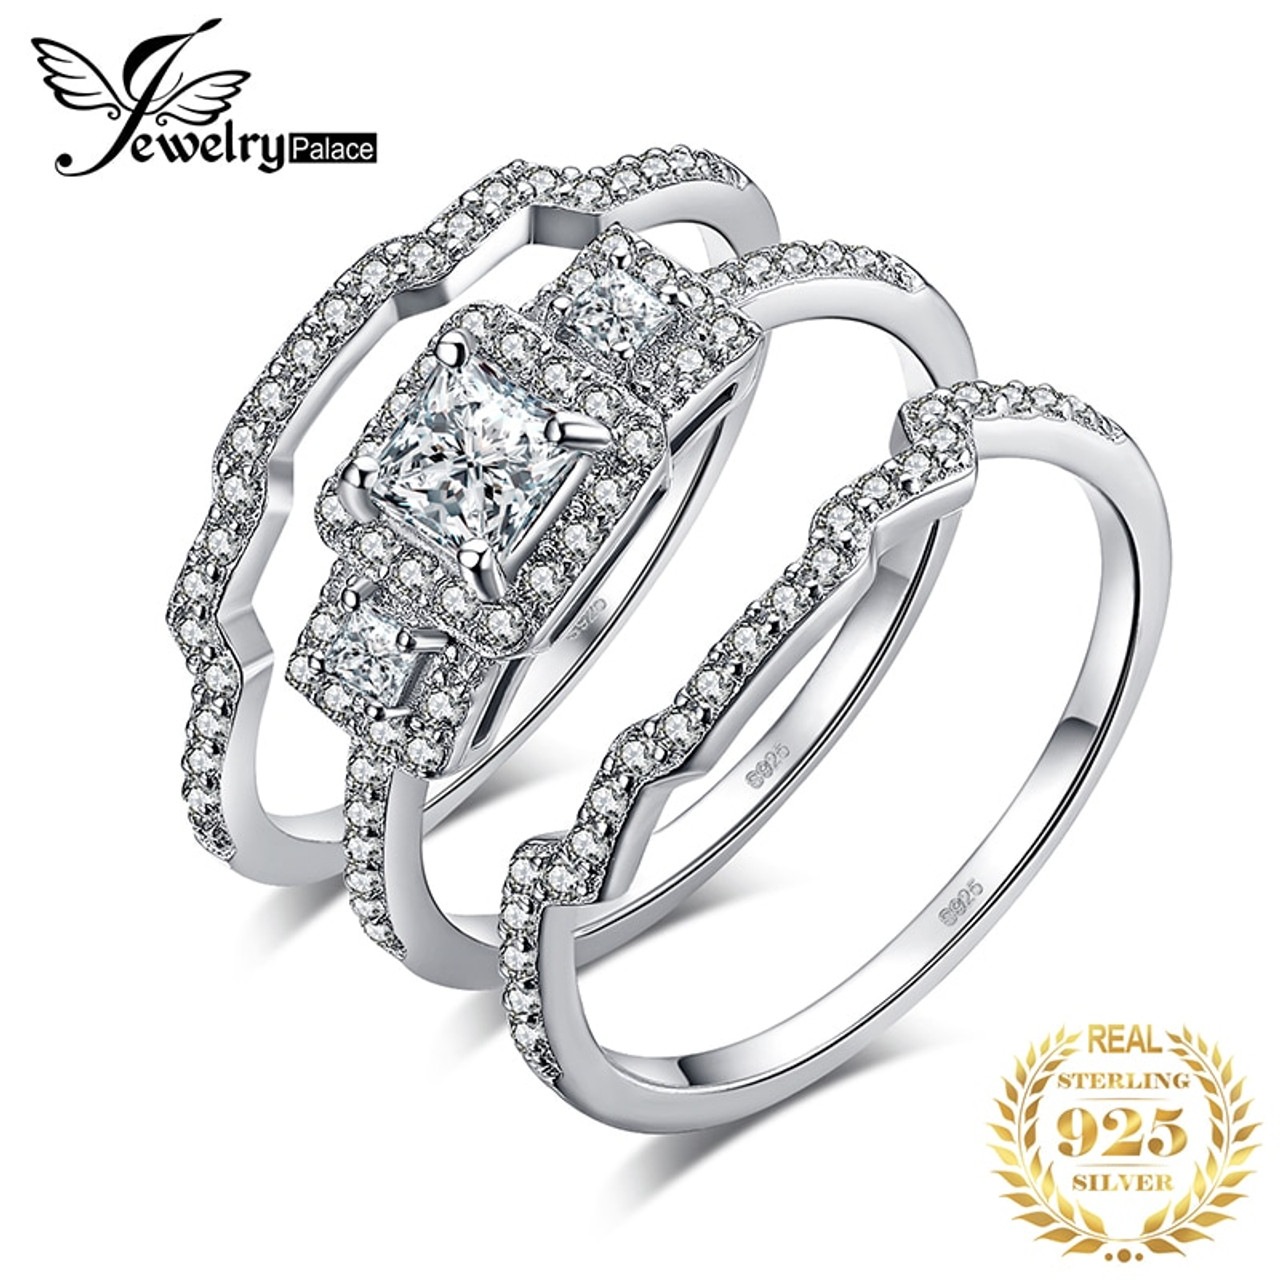 925 Sterling Silver Ladies Channel Set Eternity Wedding Engagement Band Ring